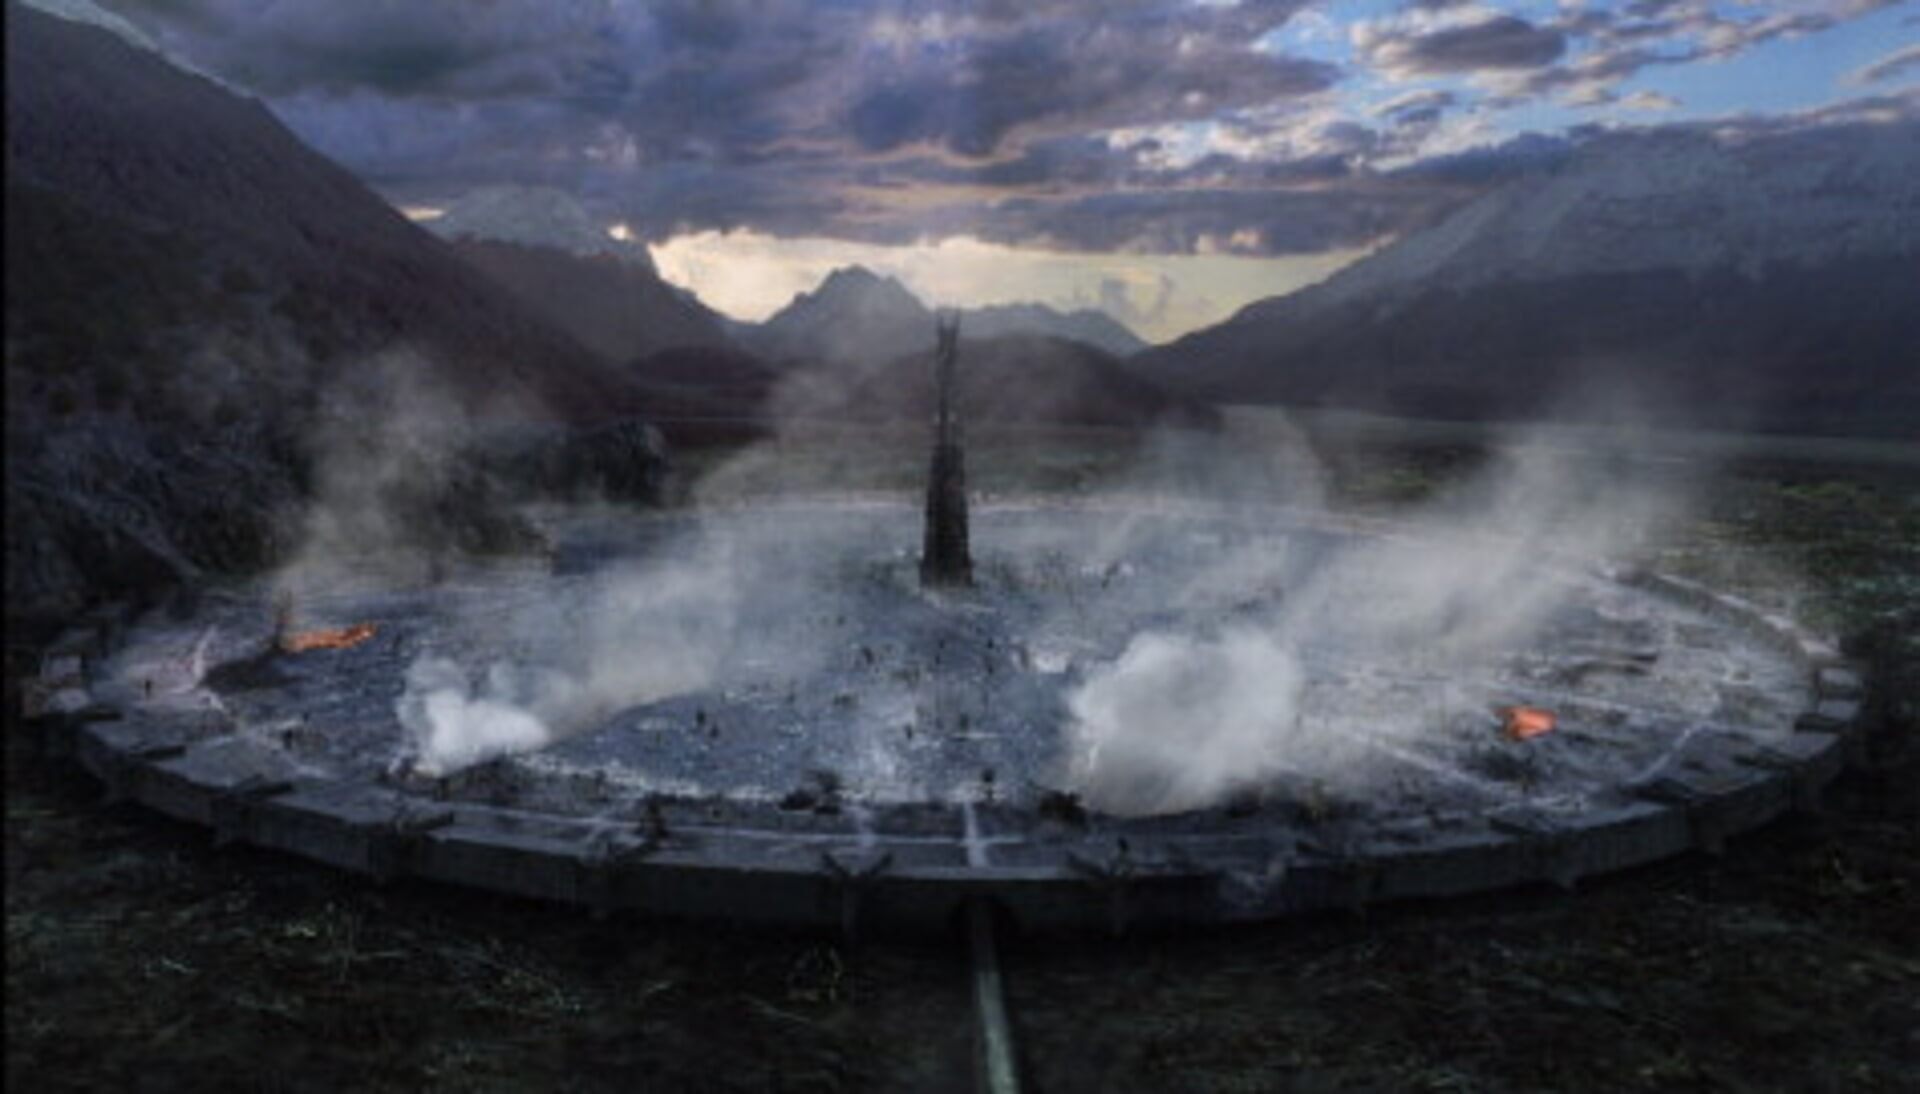 The Lord of the Rings: The Two Towers - Image 60